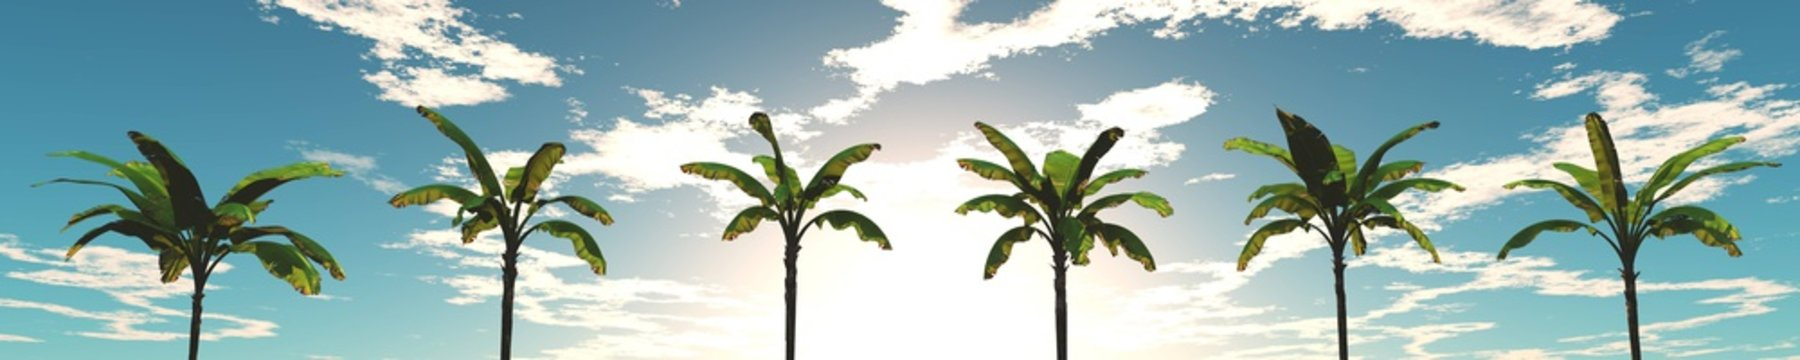 view of palm trees in the sky, banner